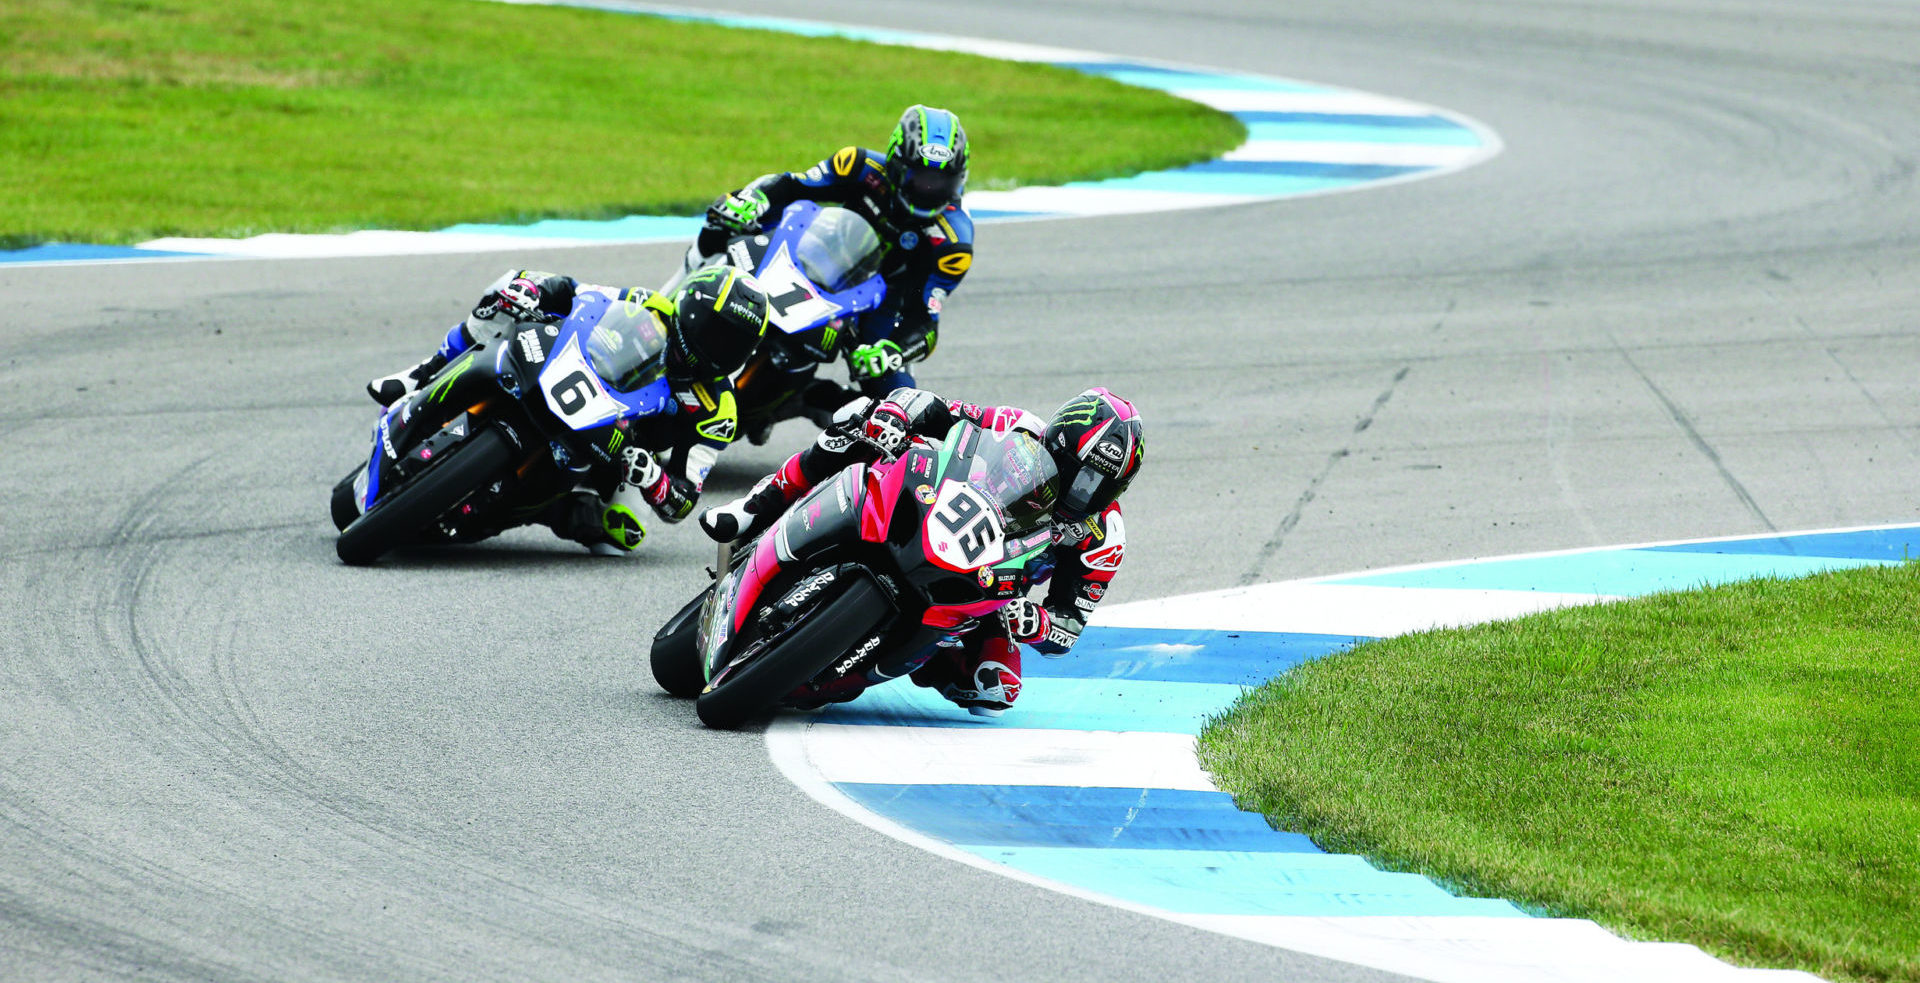 Roger Hayden (95) leads Cameron Beaubier (6) and Josh Hayes (1) in MotoAmerica Superbike Race Two at Indianapolis Motor Speedway in 2015. Photo by Brian J. Nelson.